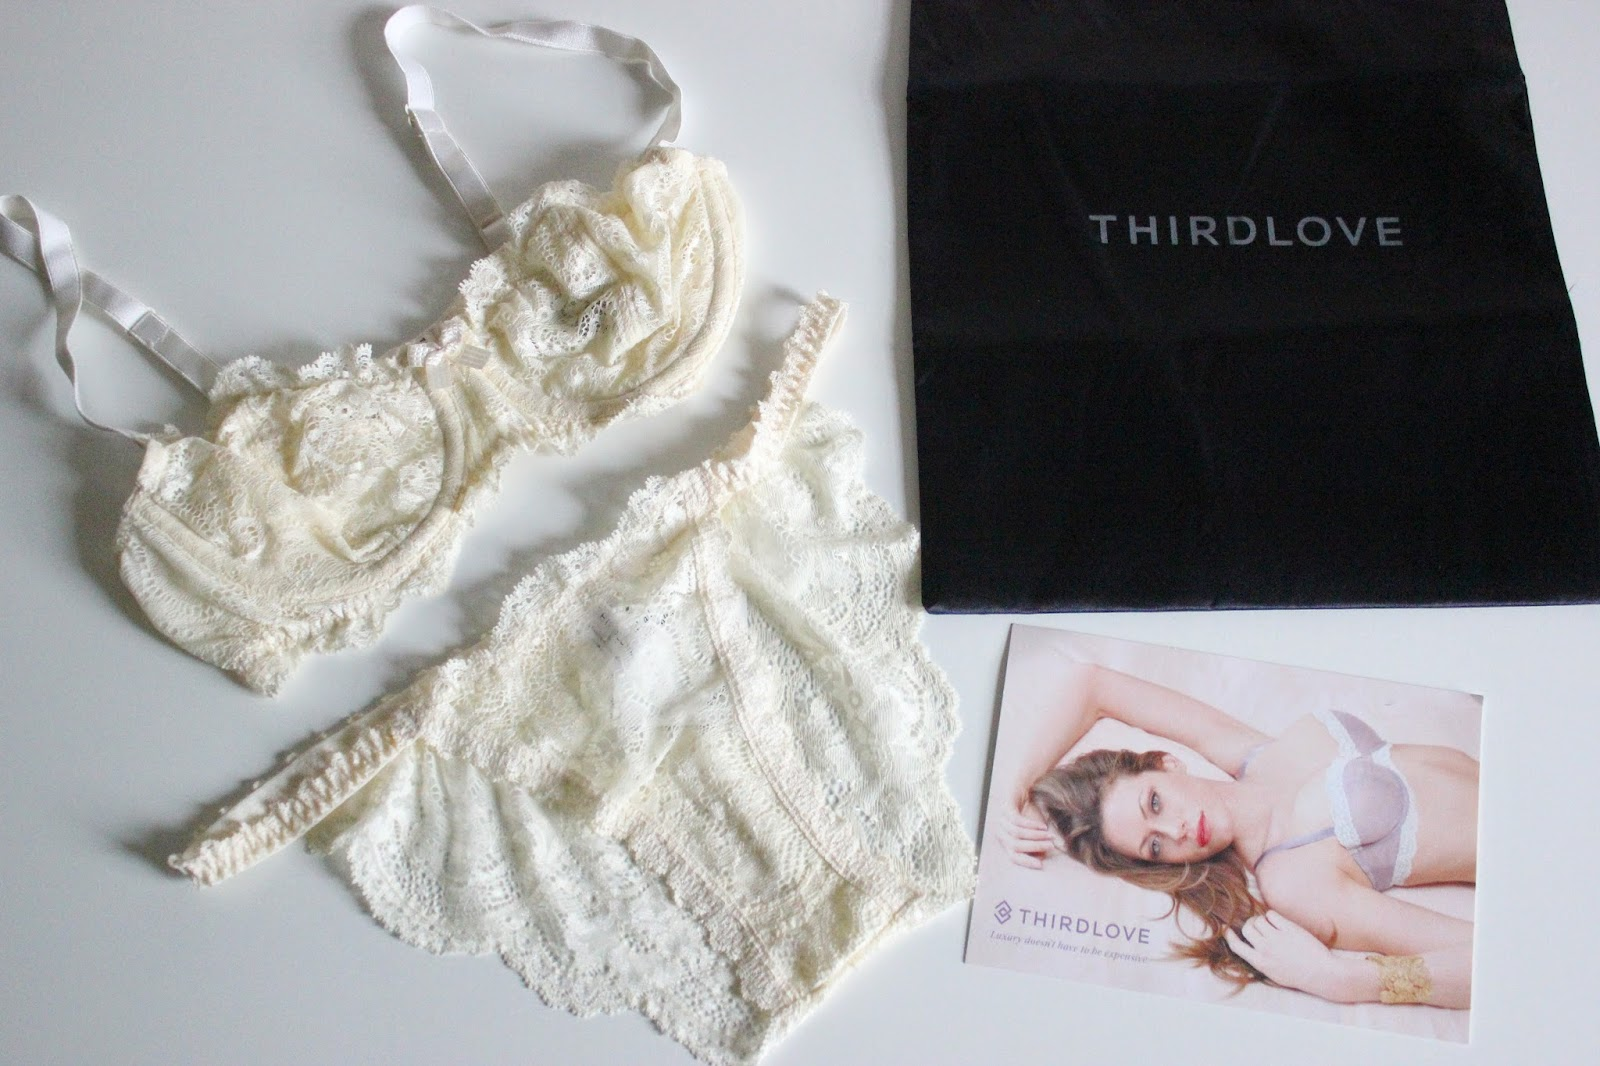 ThirdLove Lace Lingerie Review